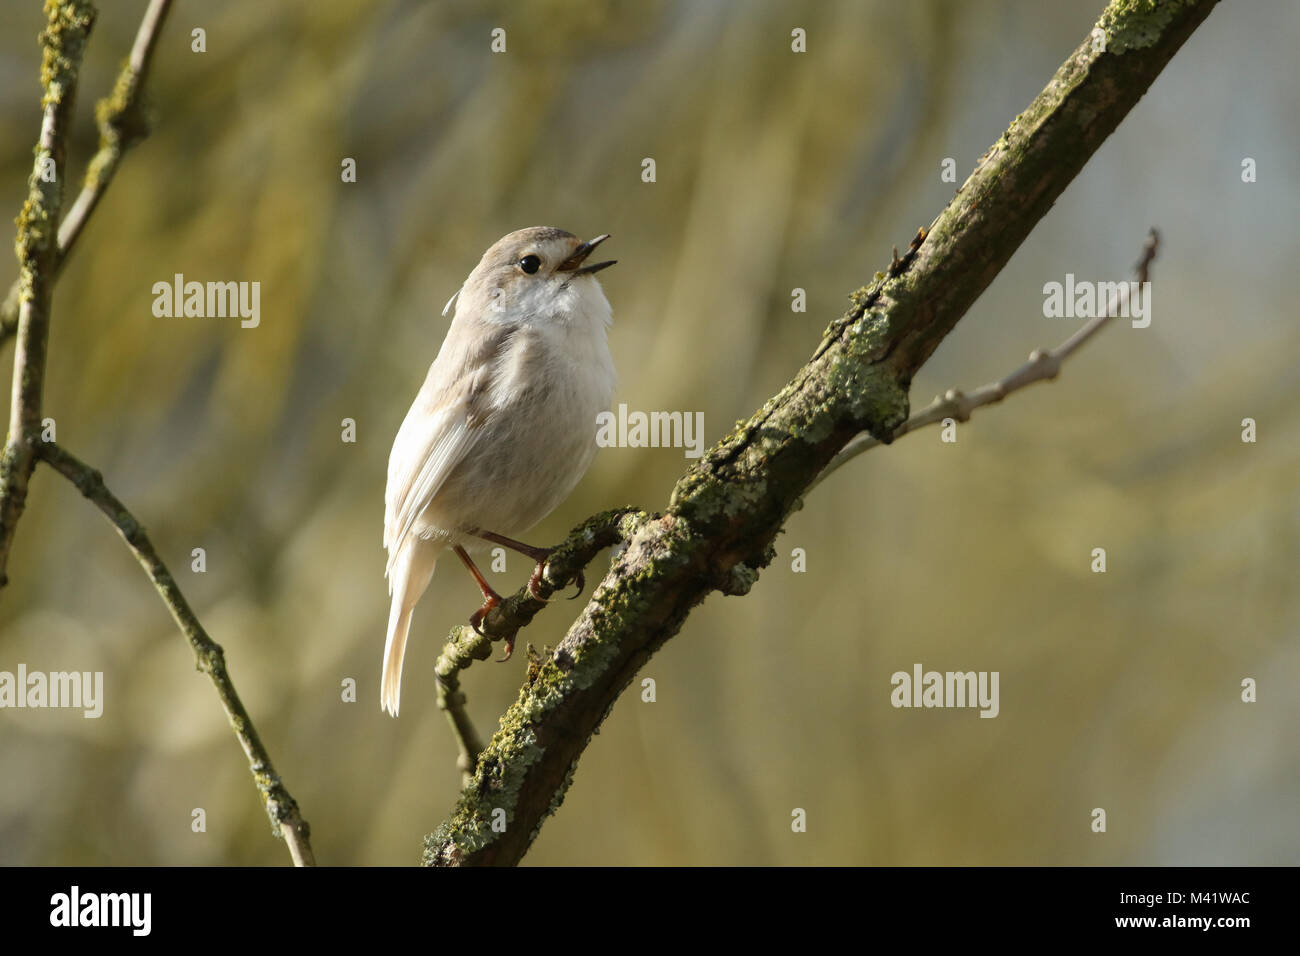 A rare Leucistic Robin (Erithacus rubecula) perched and singing on a branch in a tree. - Stock Image